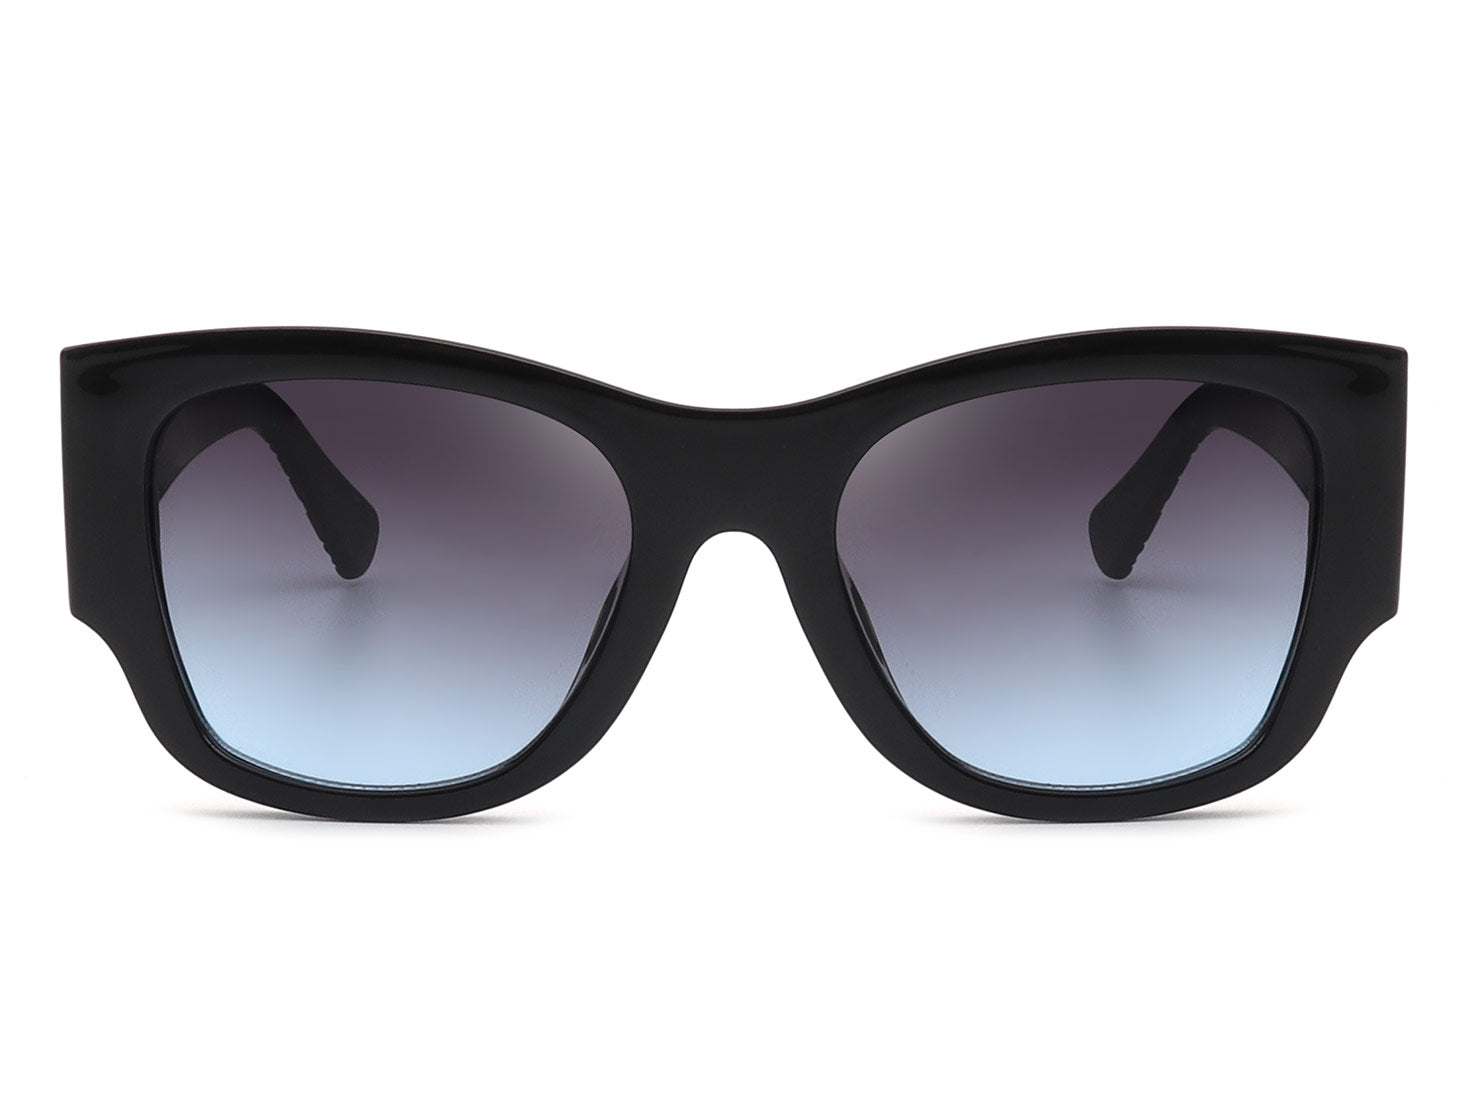 HS1030 - Women Round Cat Eye Bold Oversize Fashion Sunglasses